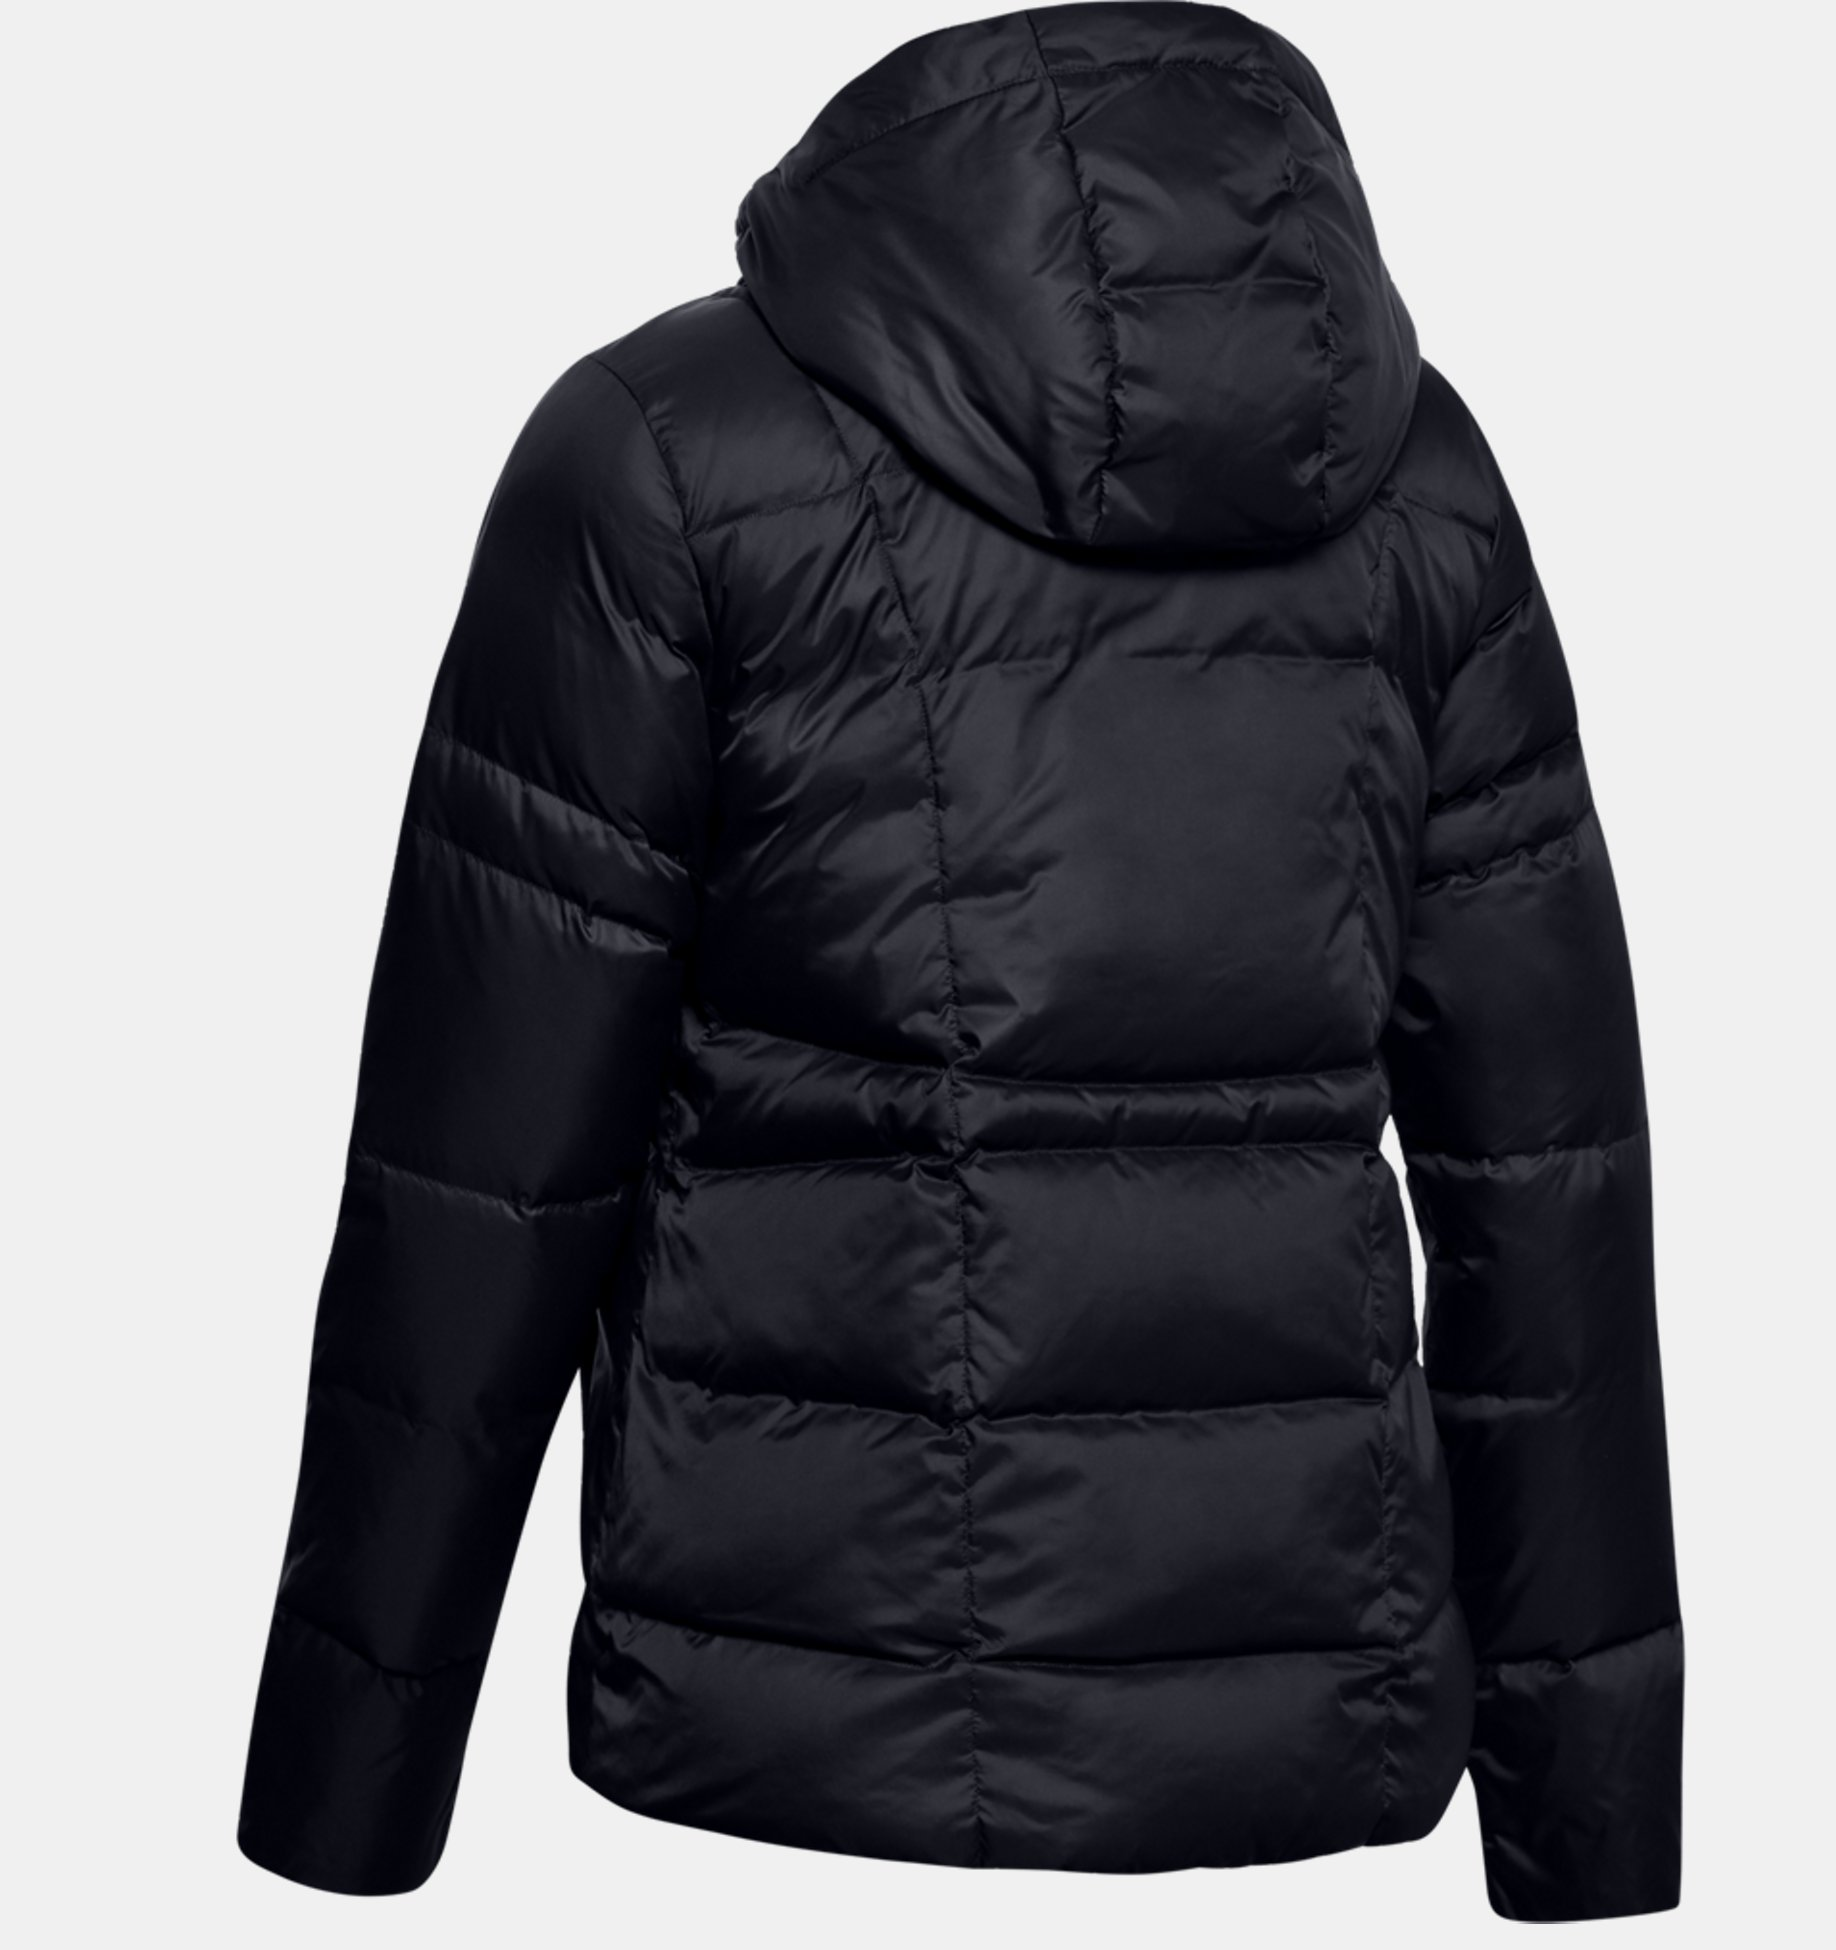 Women's UA Armour Down Hooded Jacket | Under Armour DK